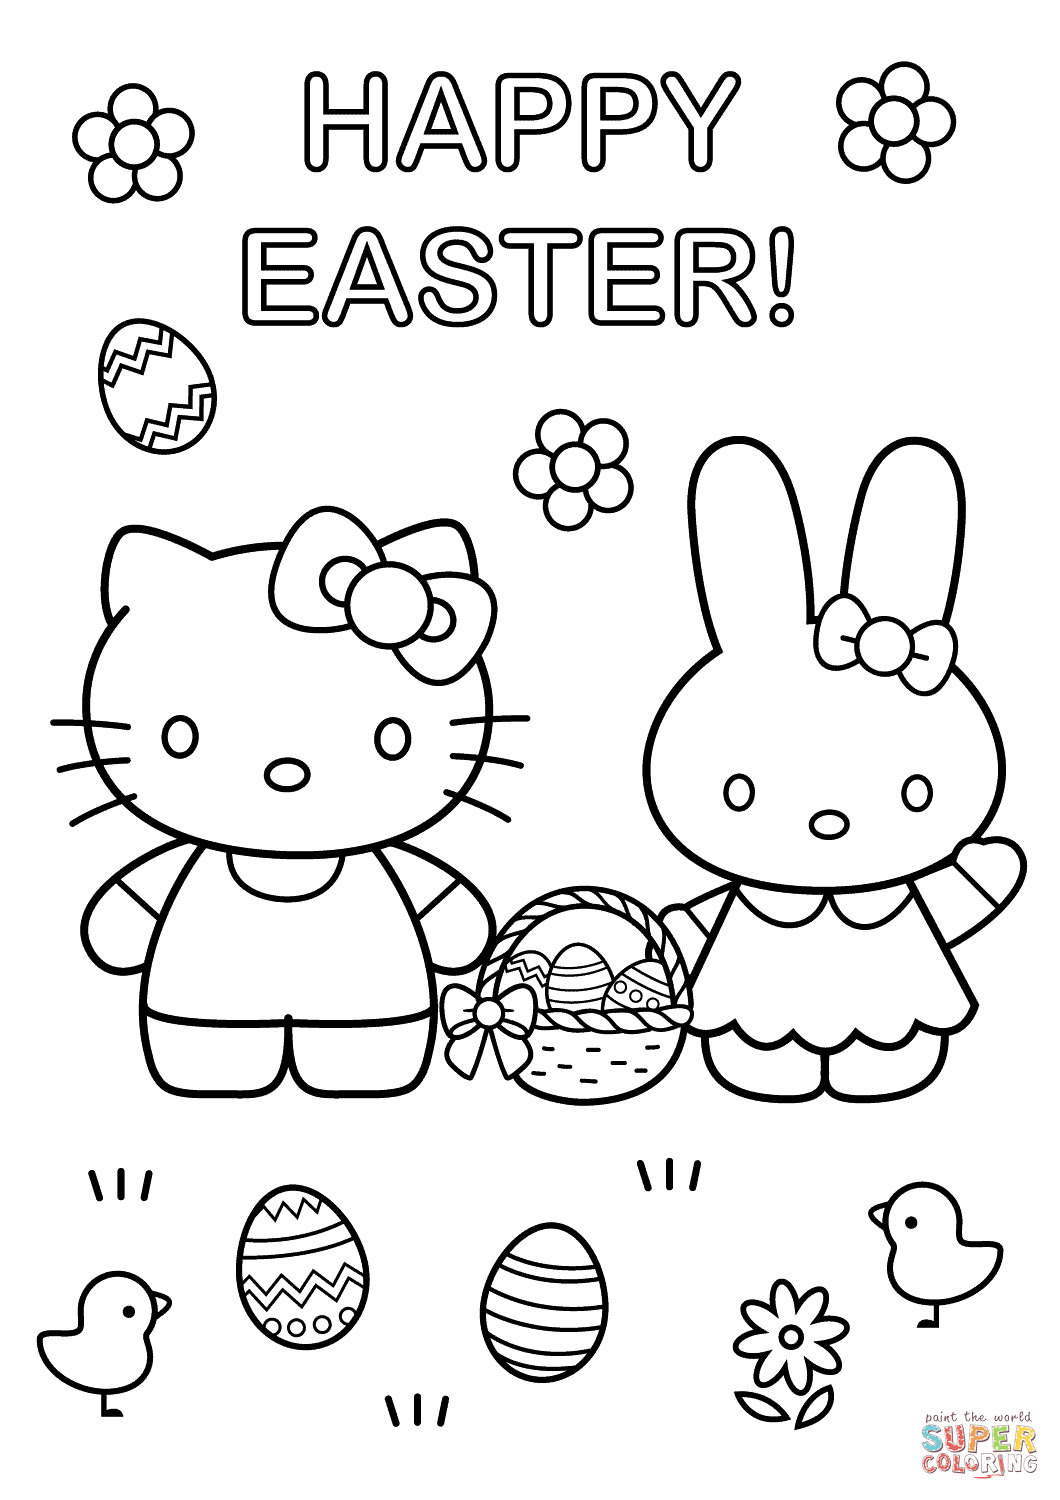 Hello Kitty With Easter Bunny Coloring Page From Hello Kitty Category Select From 29179 Printa Hello Kitty Coloring Kitty Coloring Hello Kitty Colouring Pages